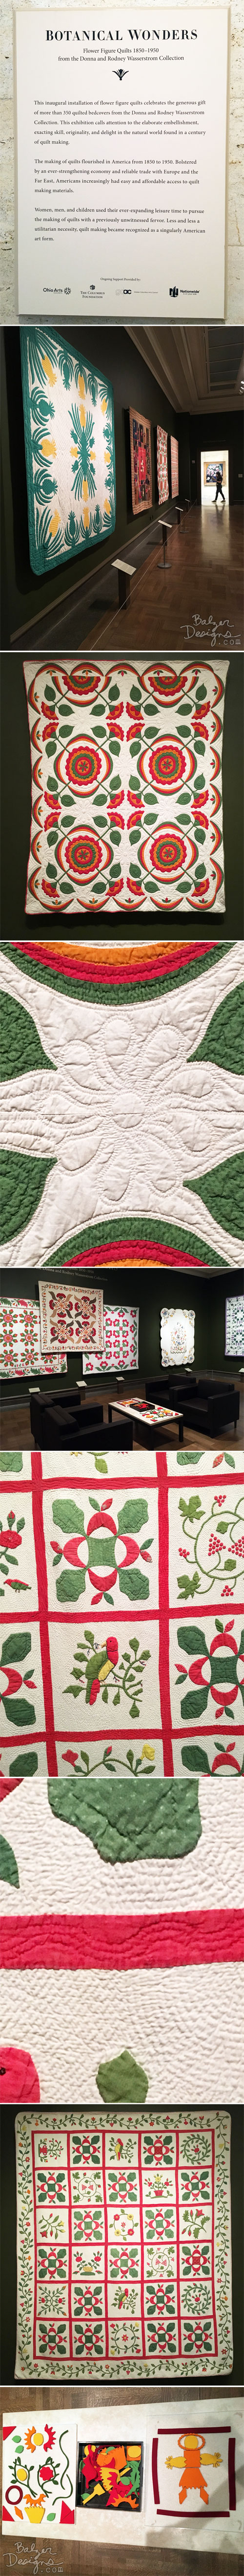 From the Balzer Designs Blog: Columbus Museum of Art: Part One